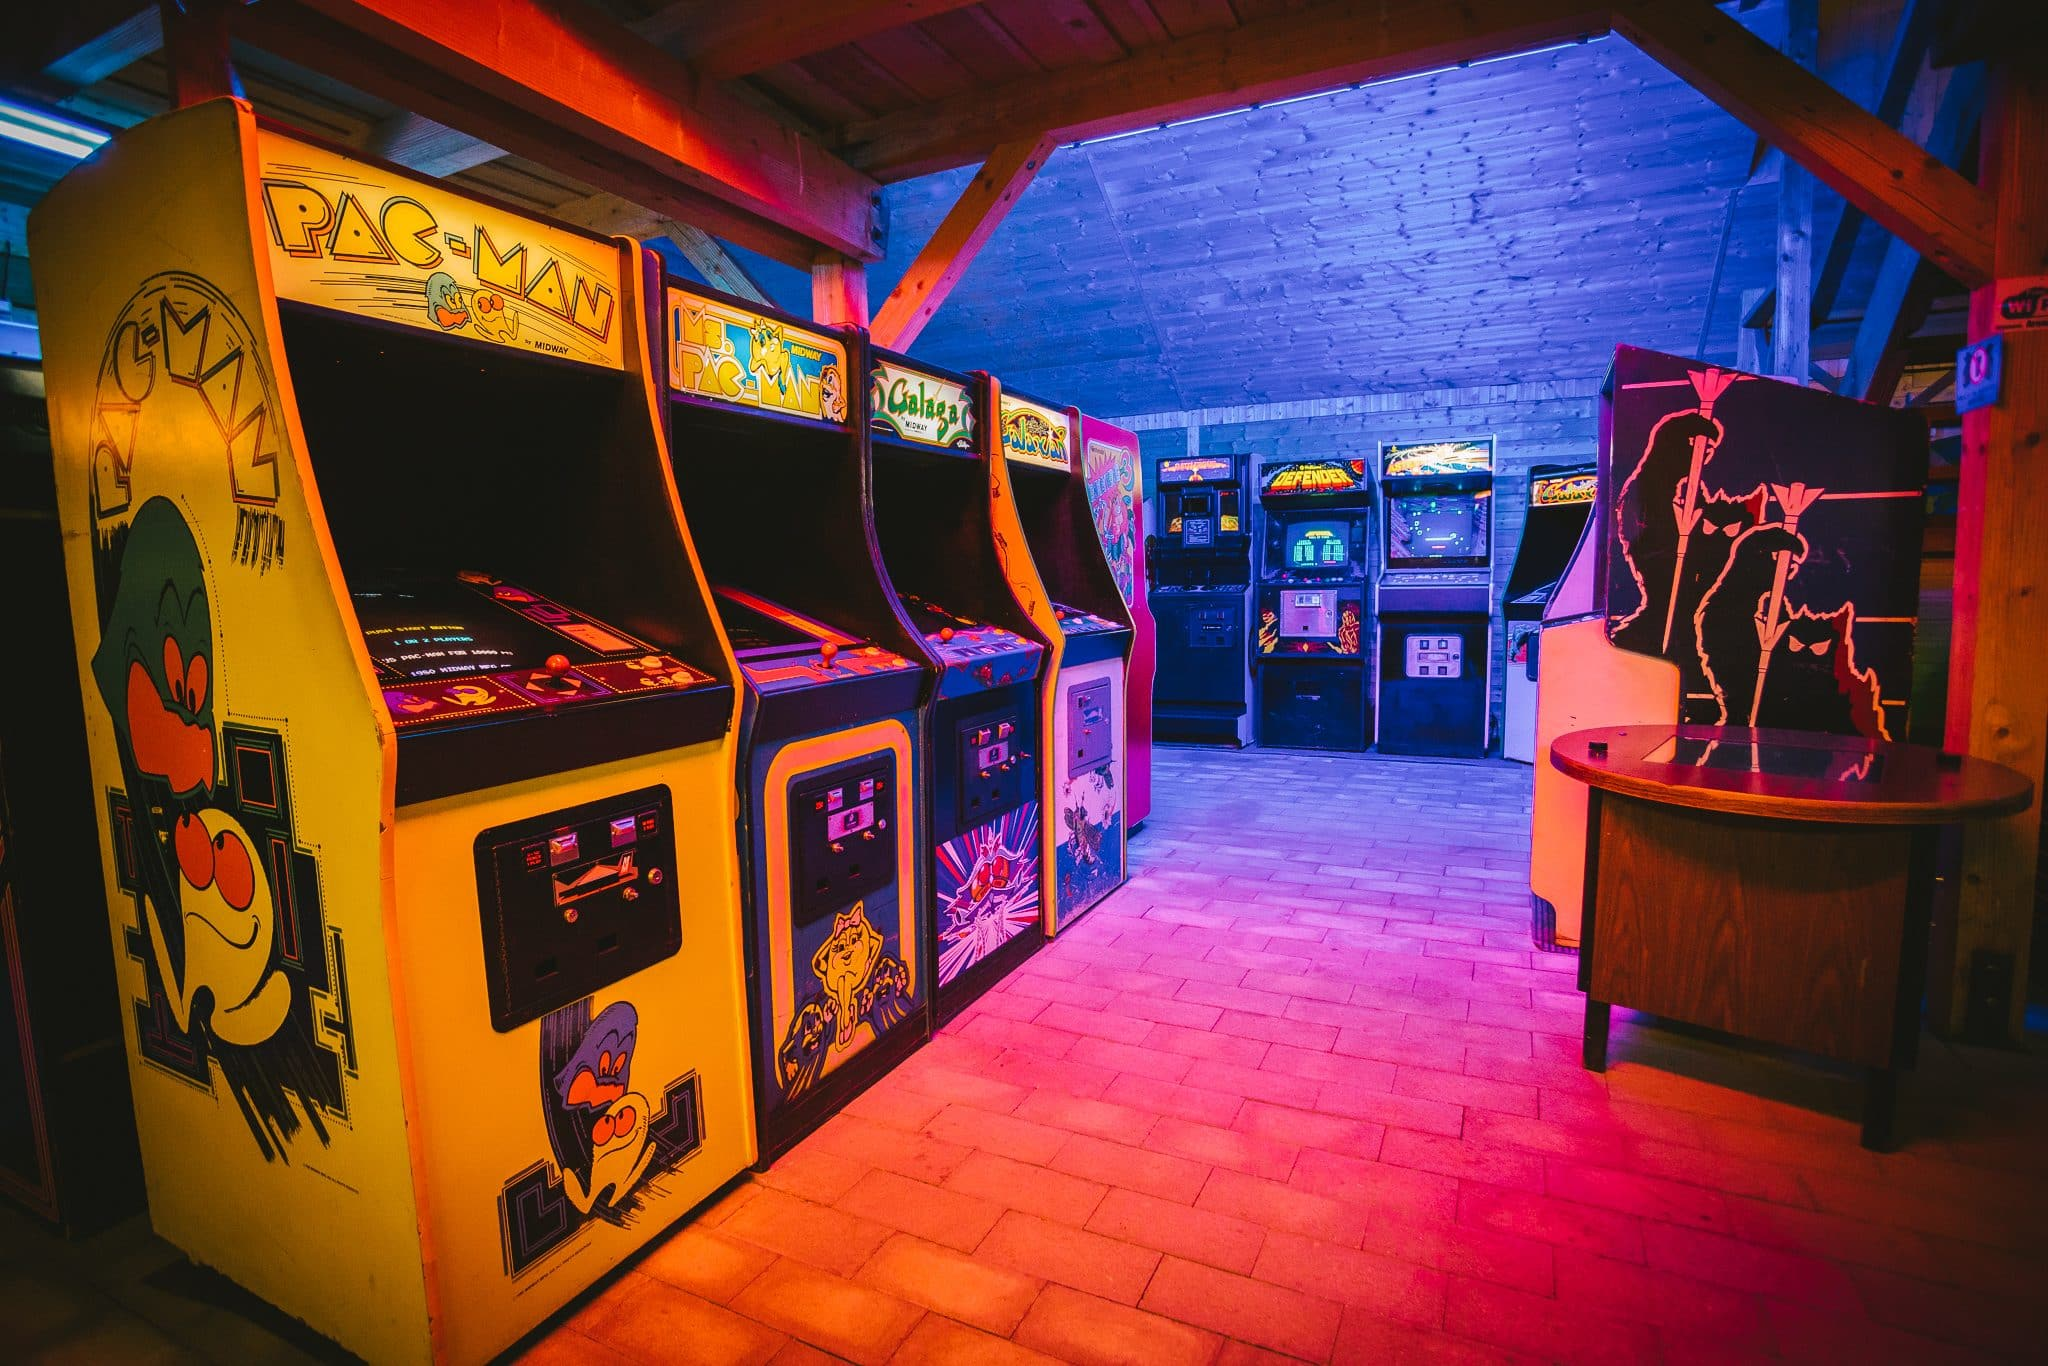 Old-school arcade game machines lined up in the Arcade Museum